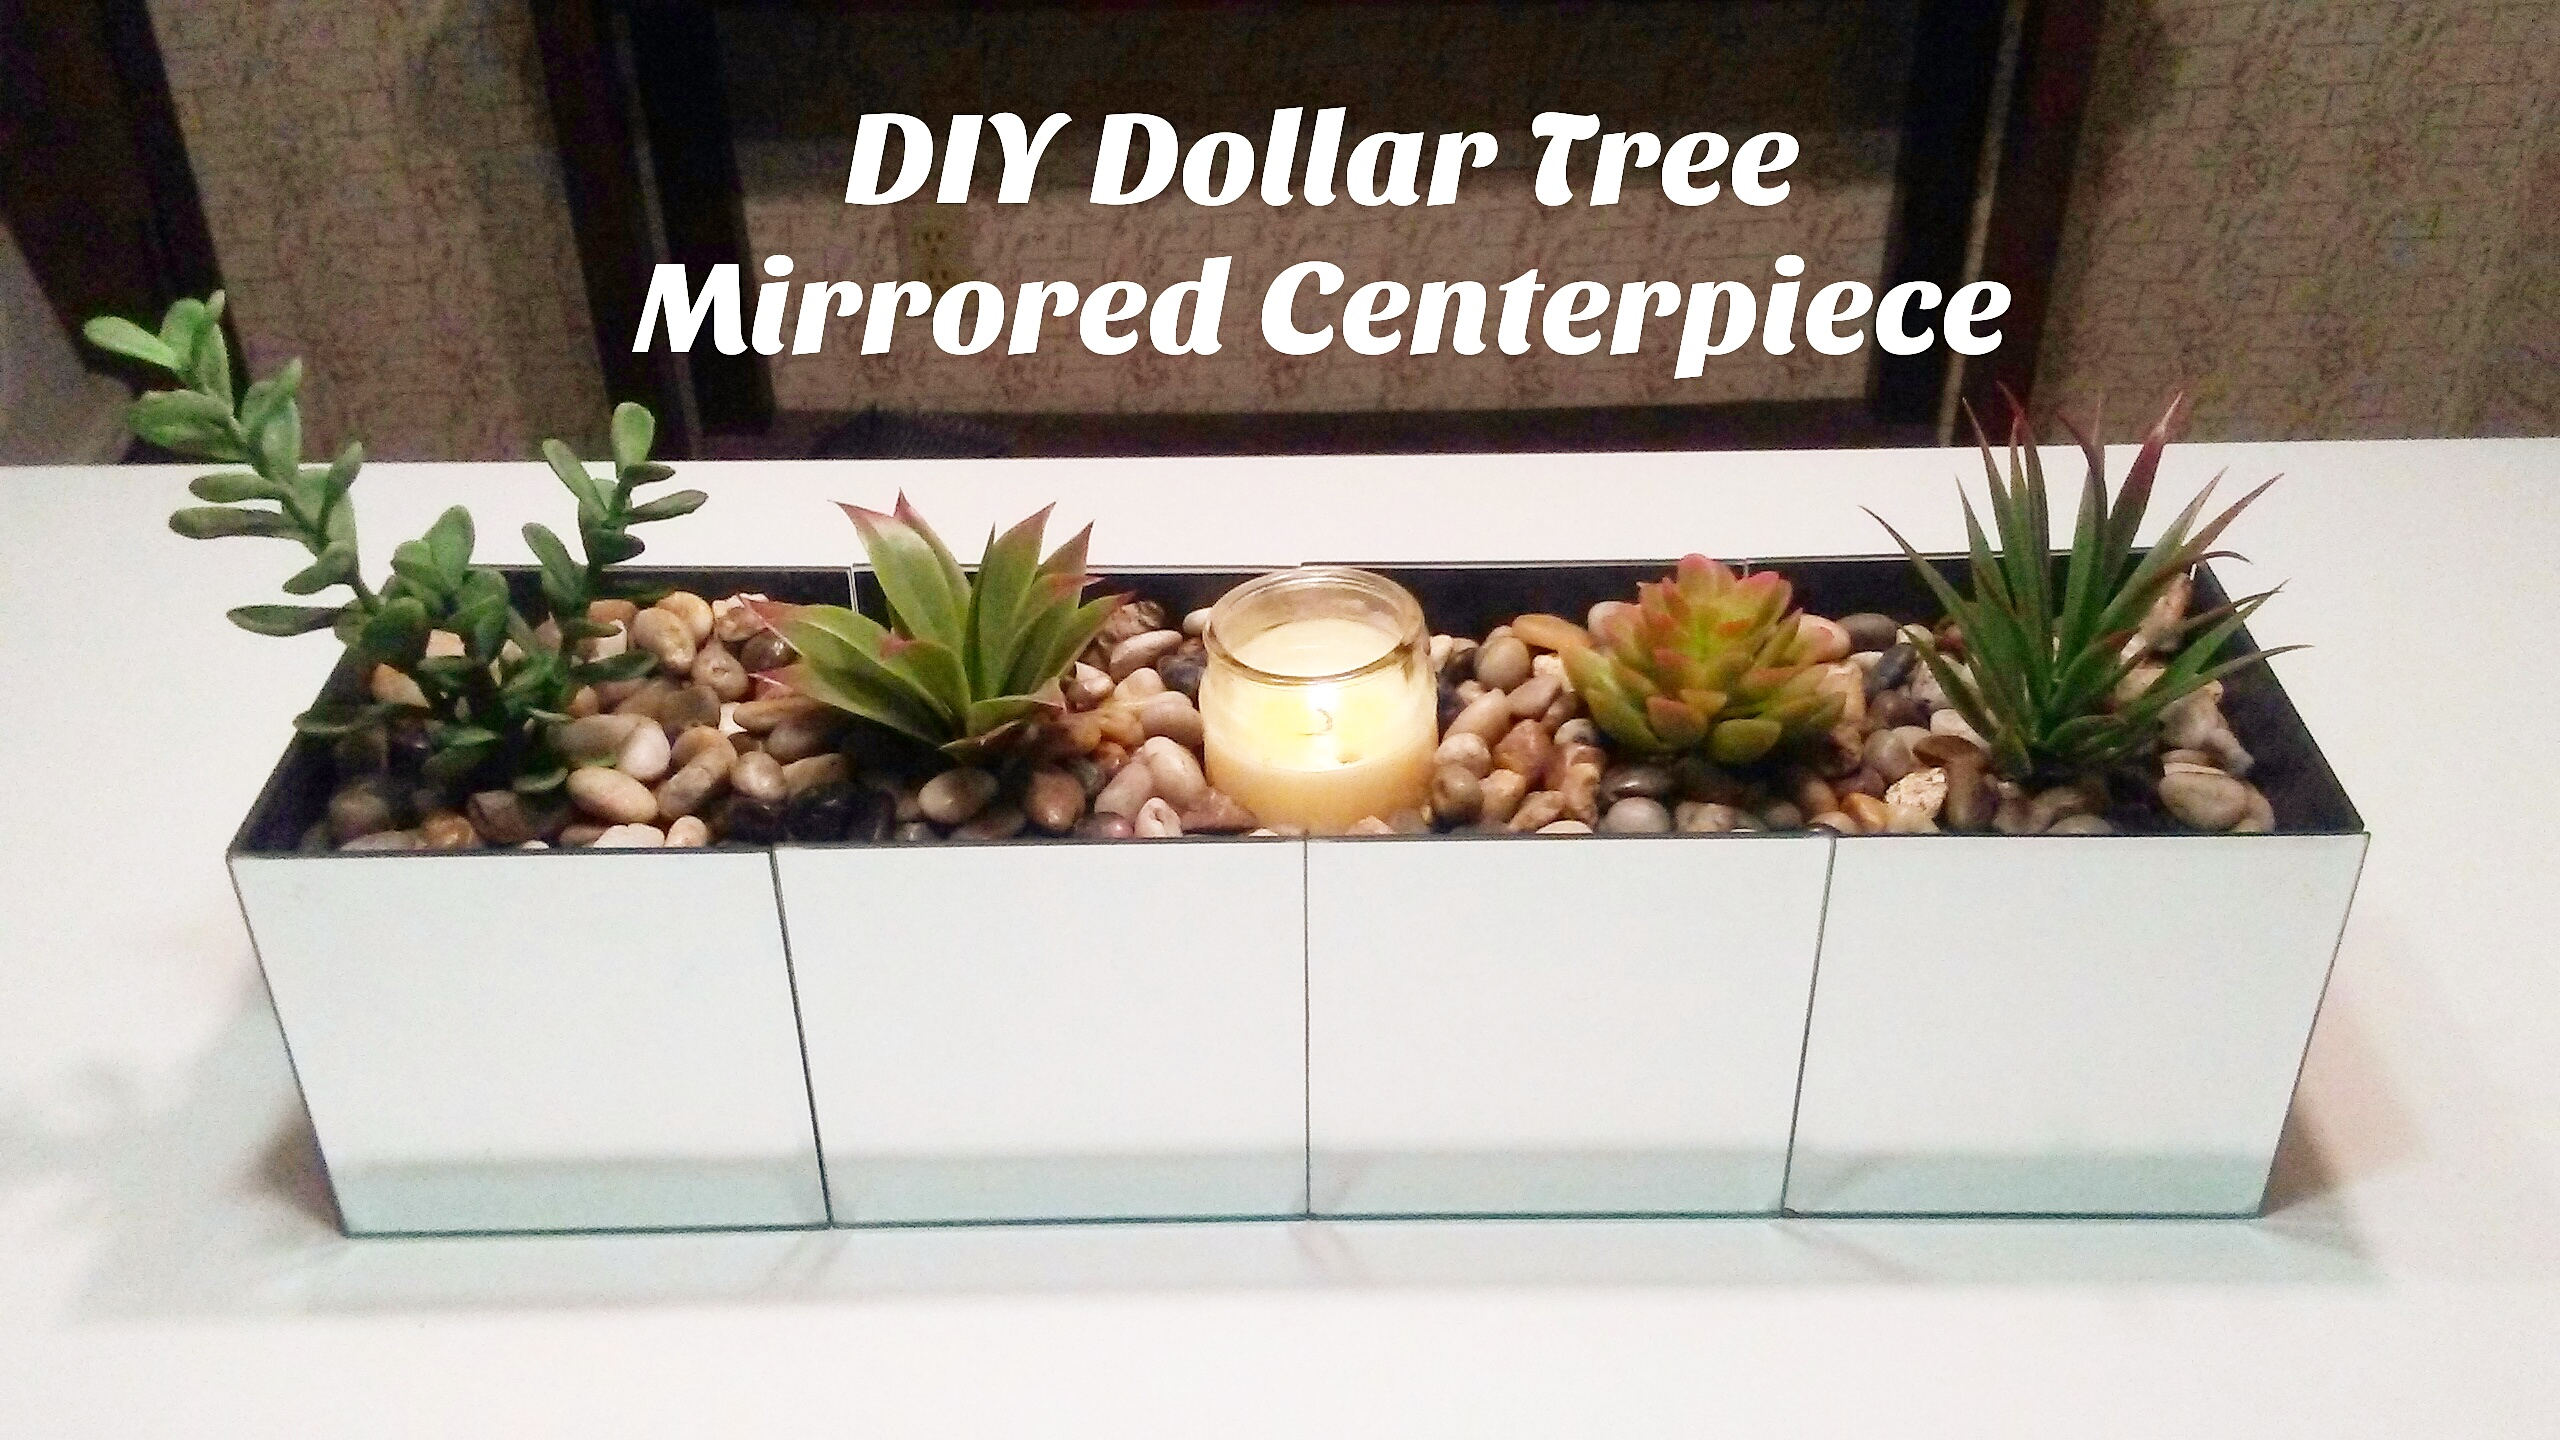 diy dollar tree mirrored centerpiece